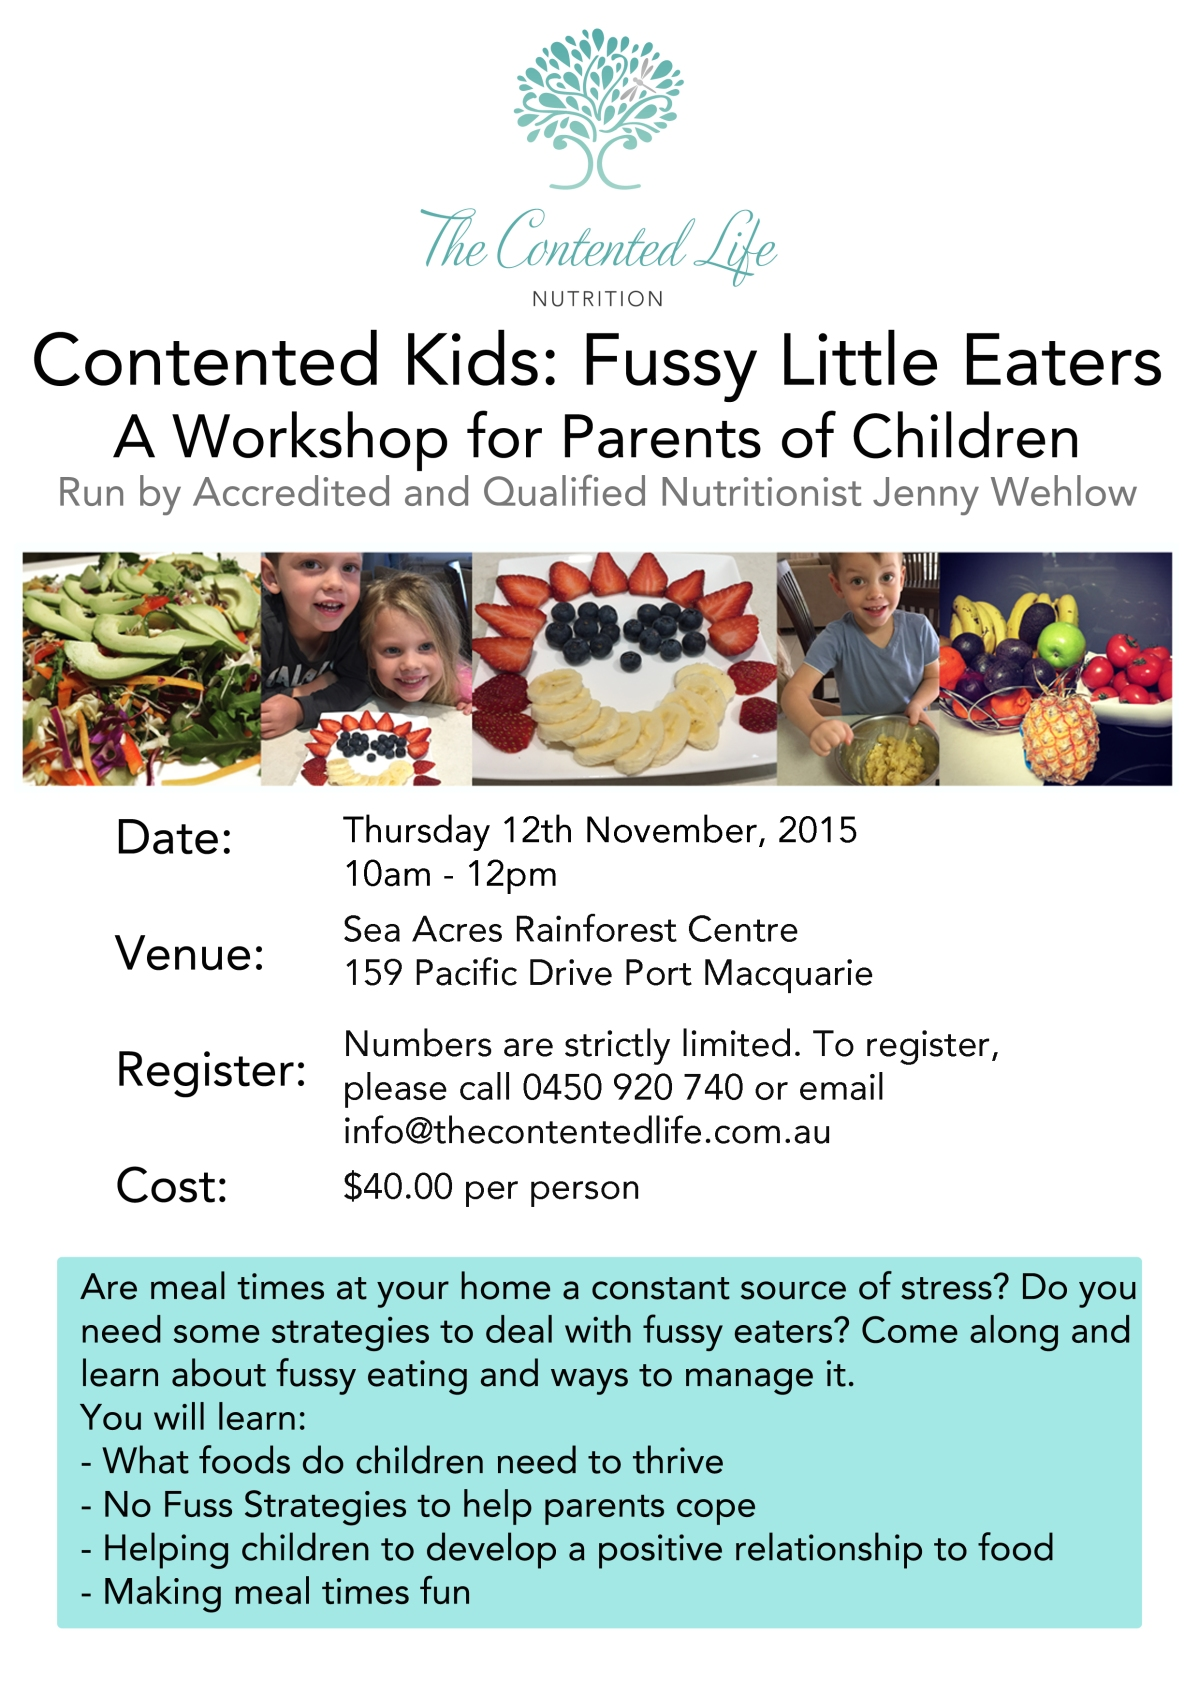 Fussy kids workshopNov15